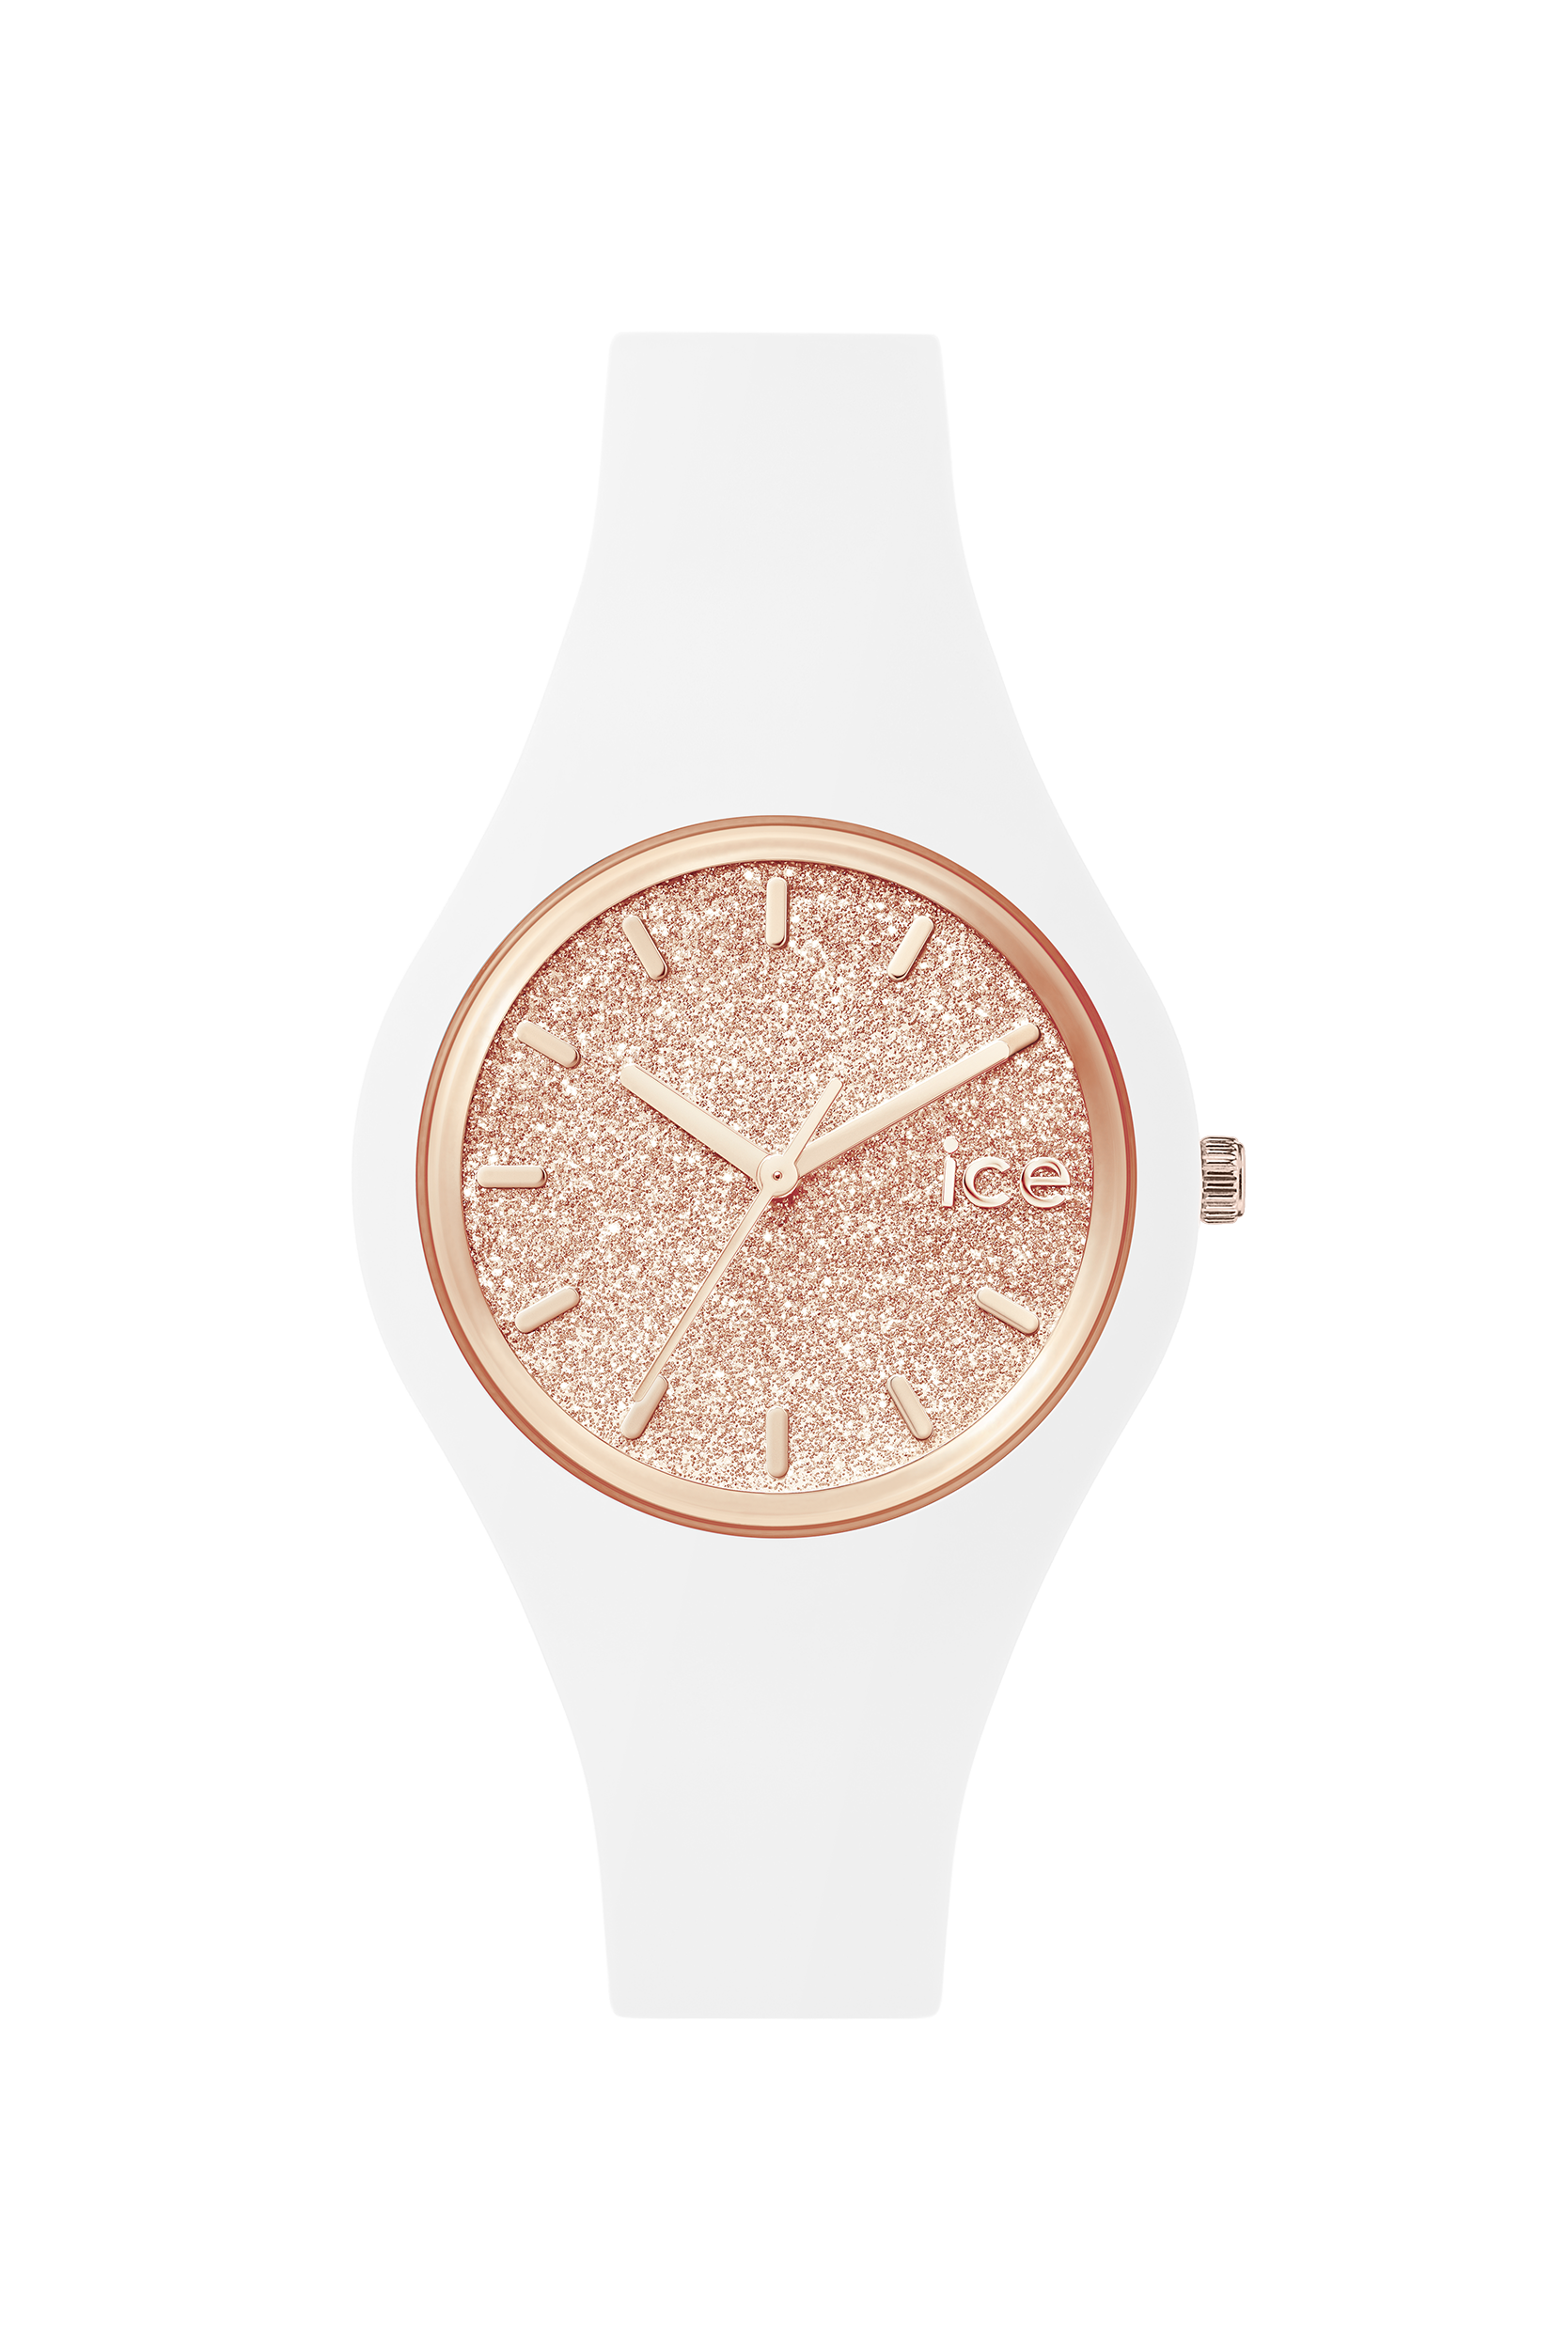 3a0a923ac1c6a4 Need a beautiful watch  Look at ICE glitter - White Rose-Gold . Buy it for  99€ or £77 on Ice-Watch Official Webstore  ...